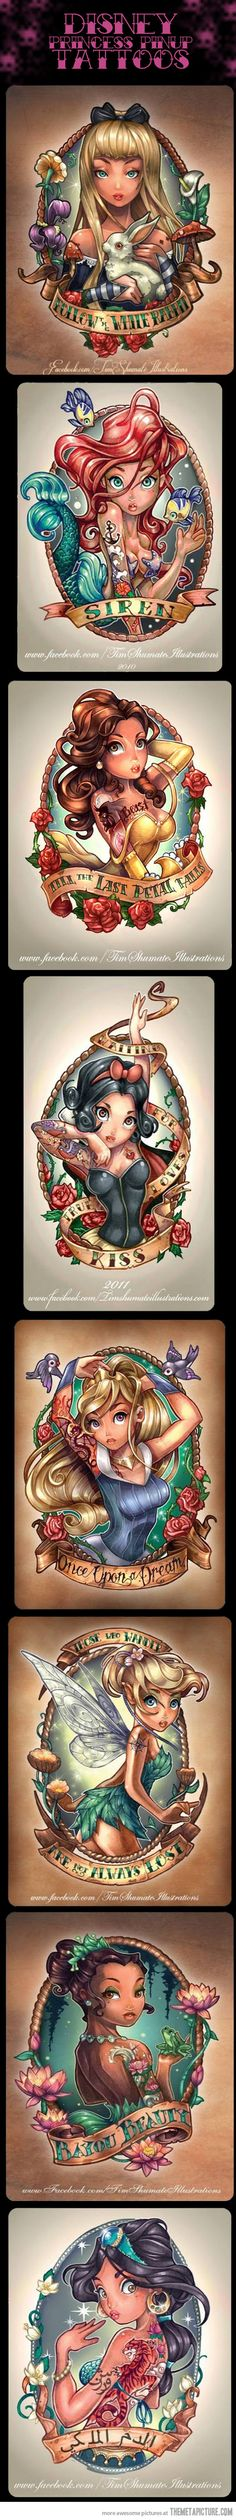 8 Very Cool Disney Princess Pinup Tattoos… sorry for always feeling the need to do this, but there's an apostrophe missing in the Snow White tat... Love's kiss.  Already commented on the mangled quote in the Tink one in another pin.  Really cool art, though.